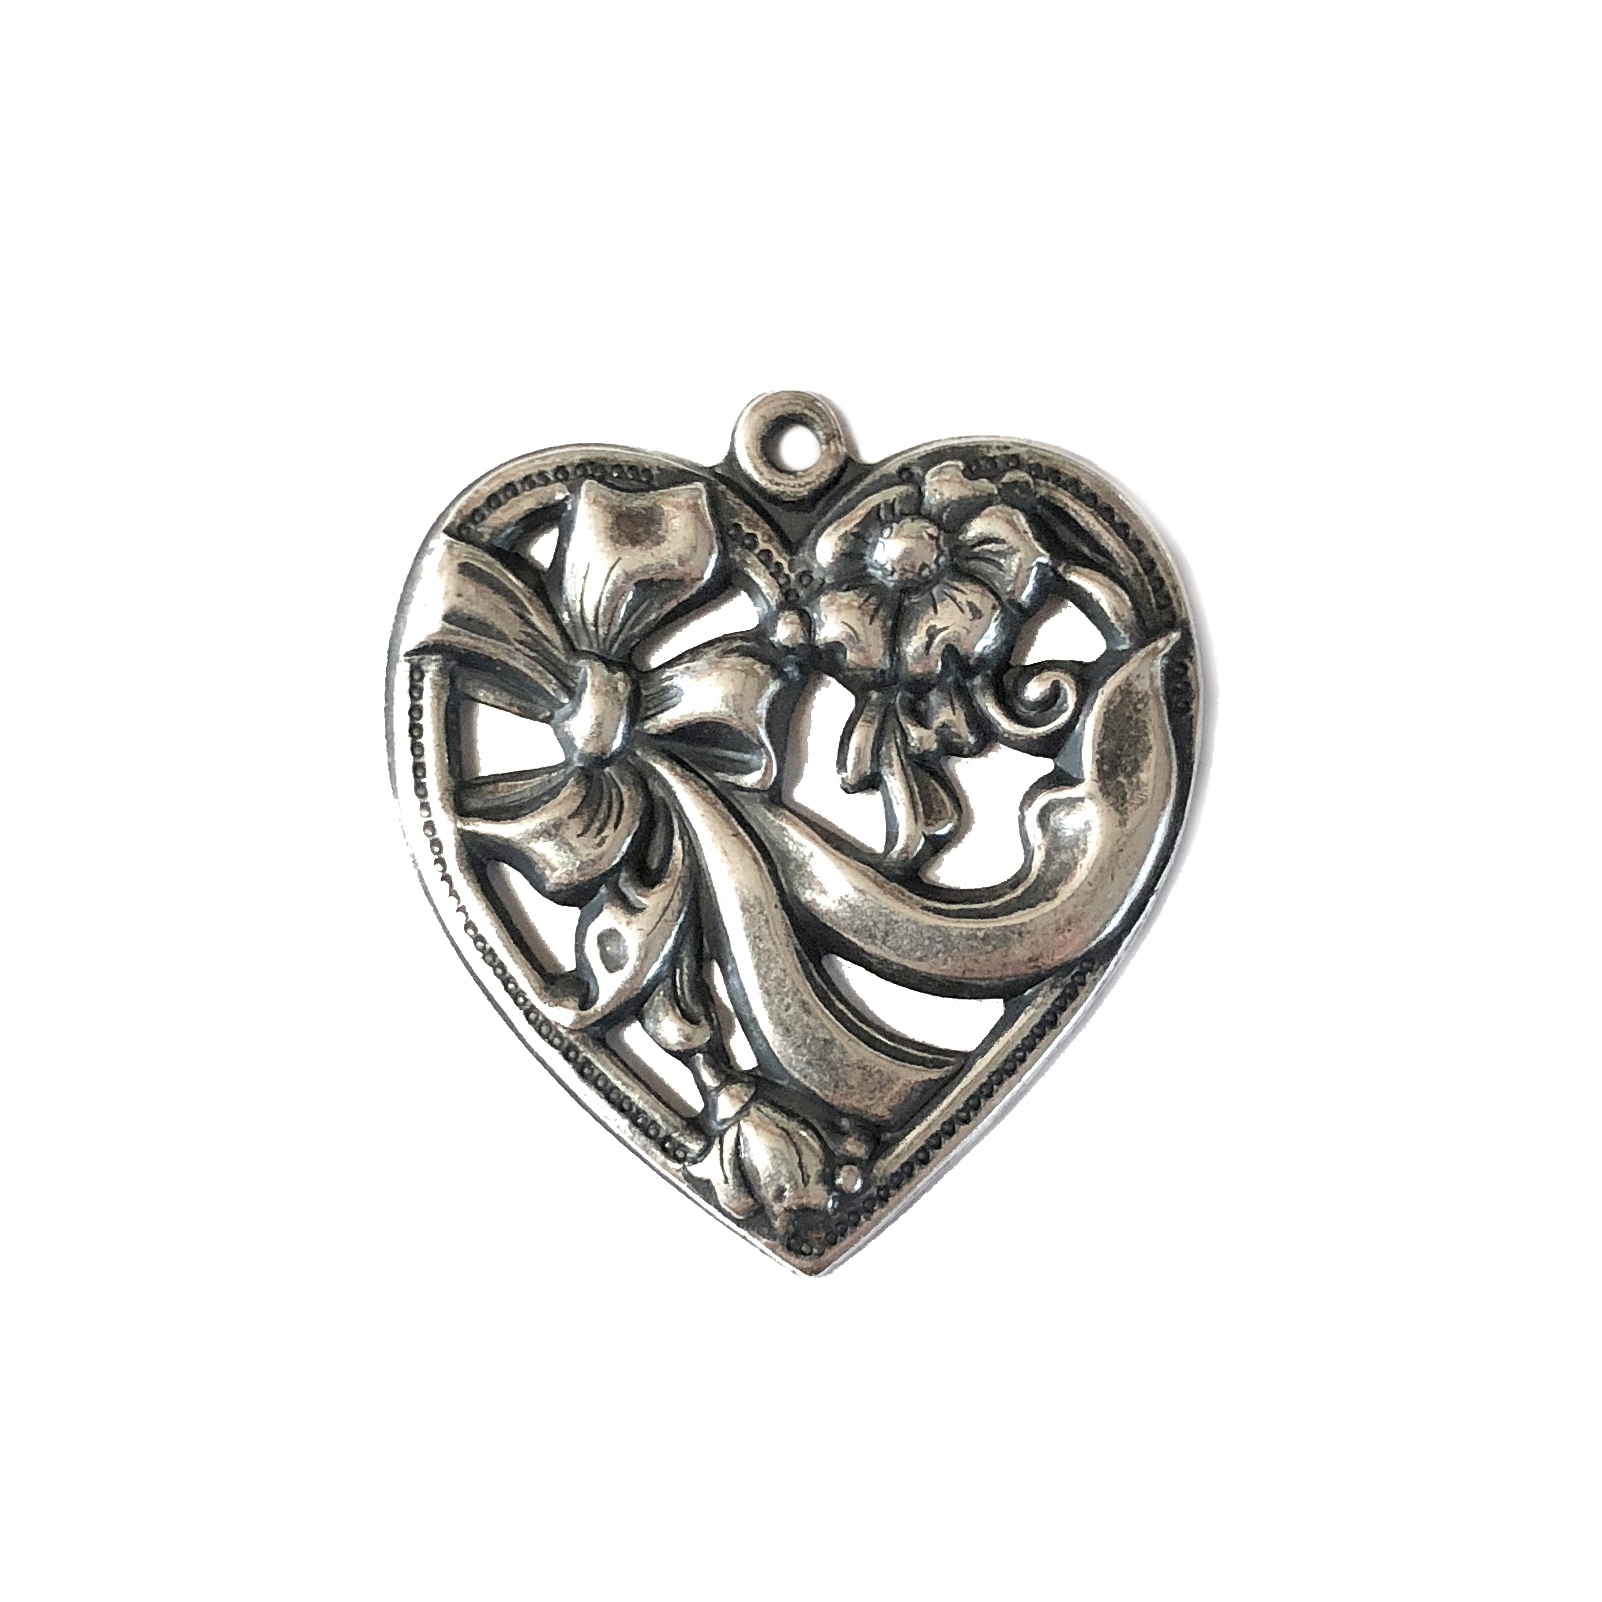 Beautiful Floral Heart Drops with Bow 27 x 26mm, Silverware Silverplate